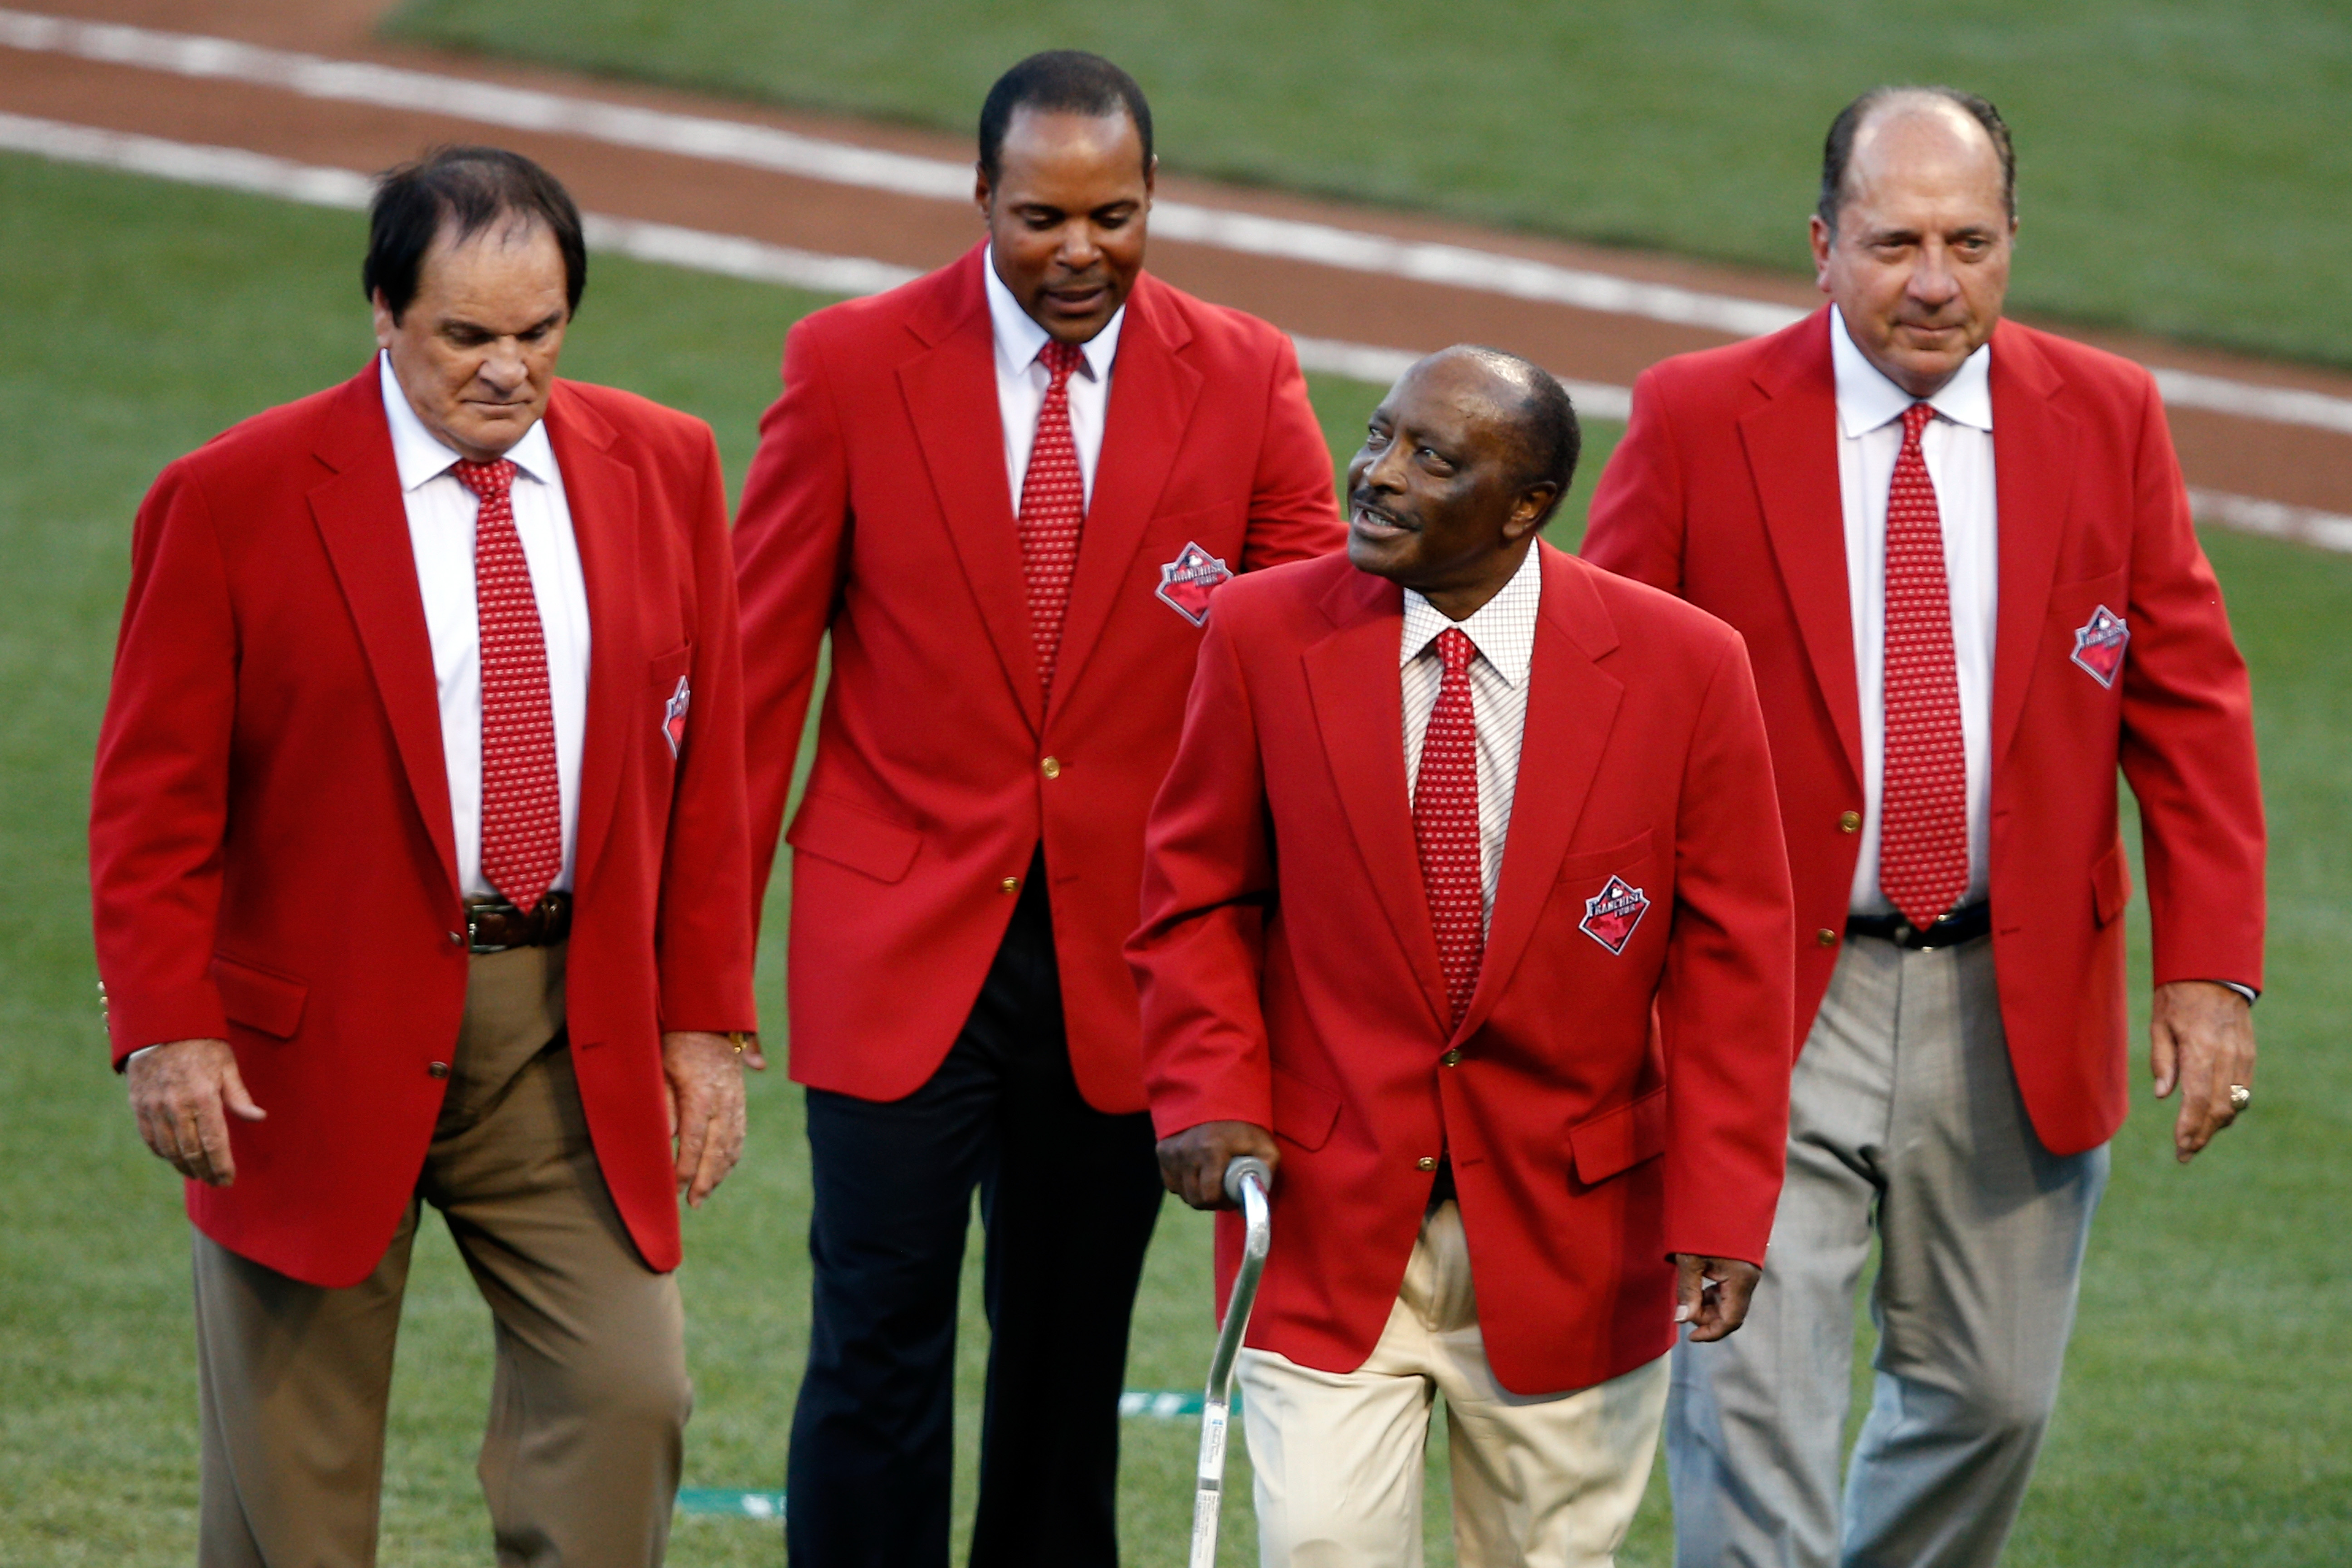 Idealistic Joe Morgan wants baseball HOF voters to keep out steroid users